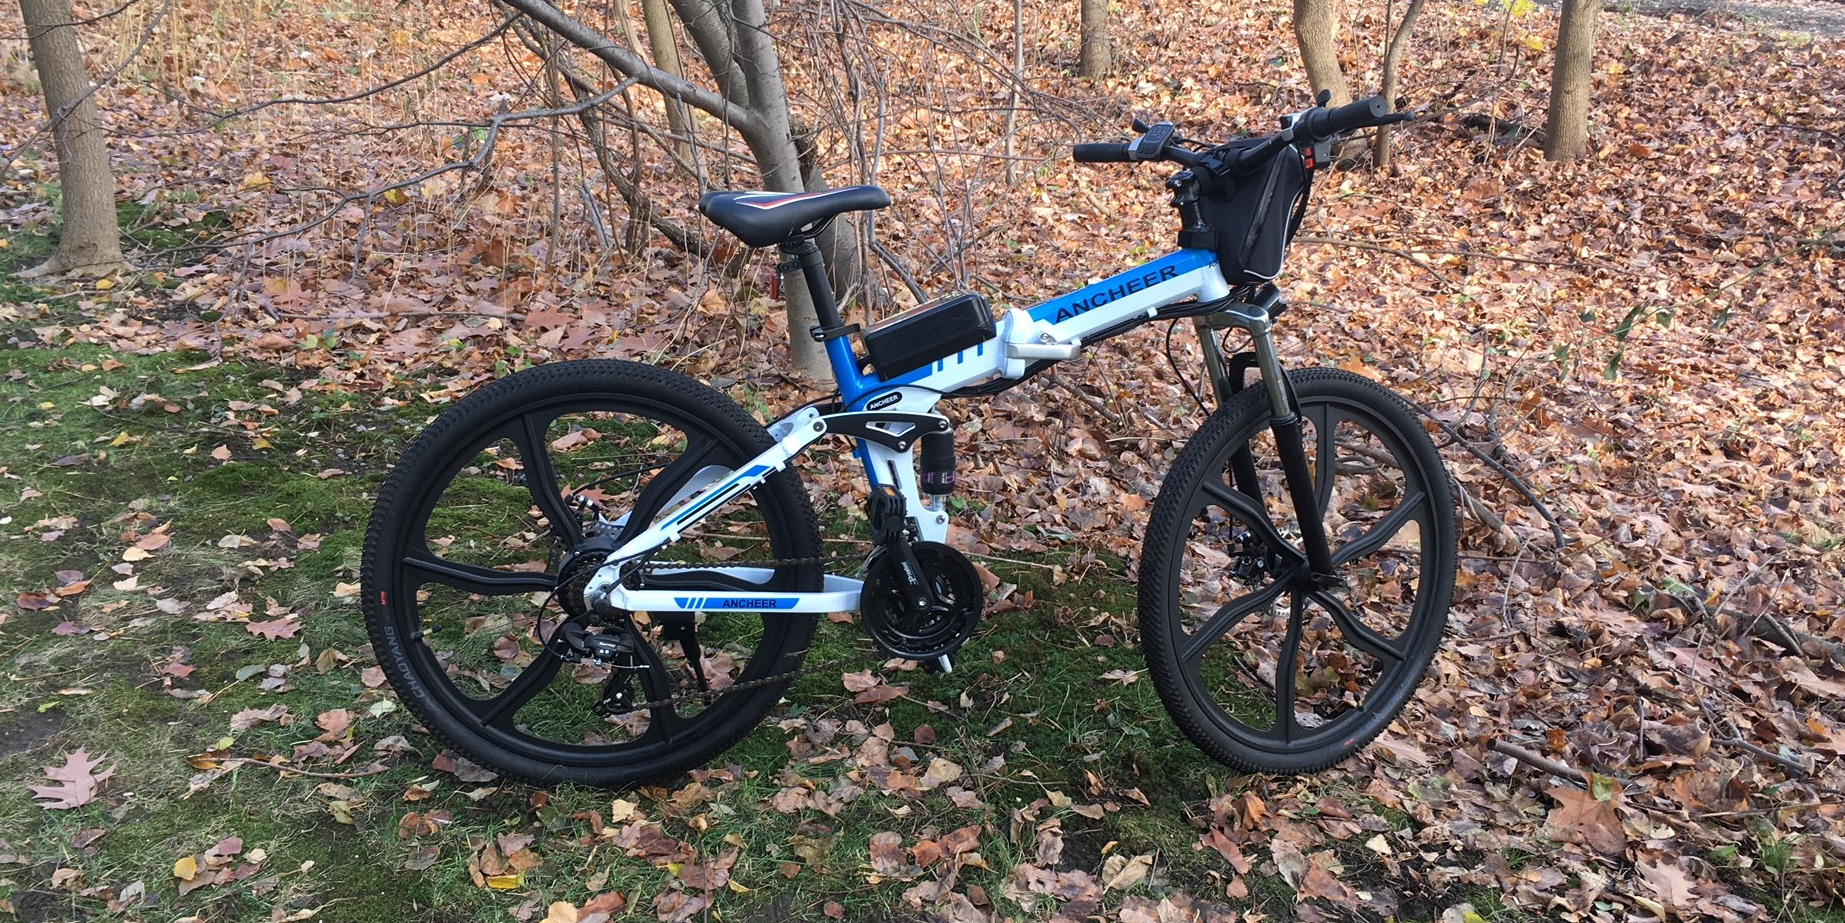 This $660 folding electric mountain bike surprised the heck out of me